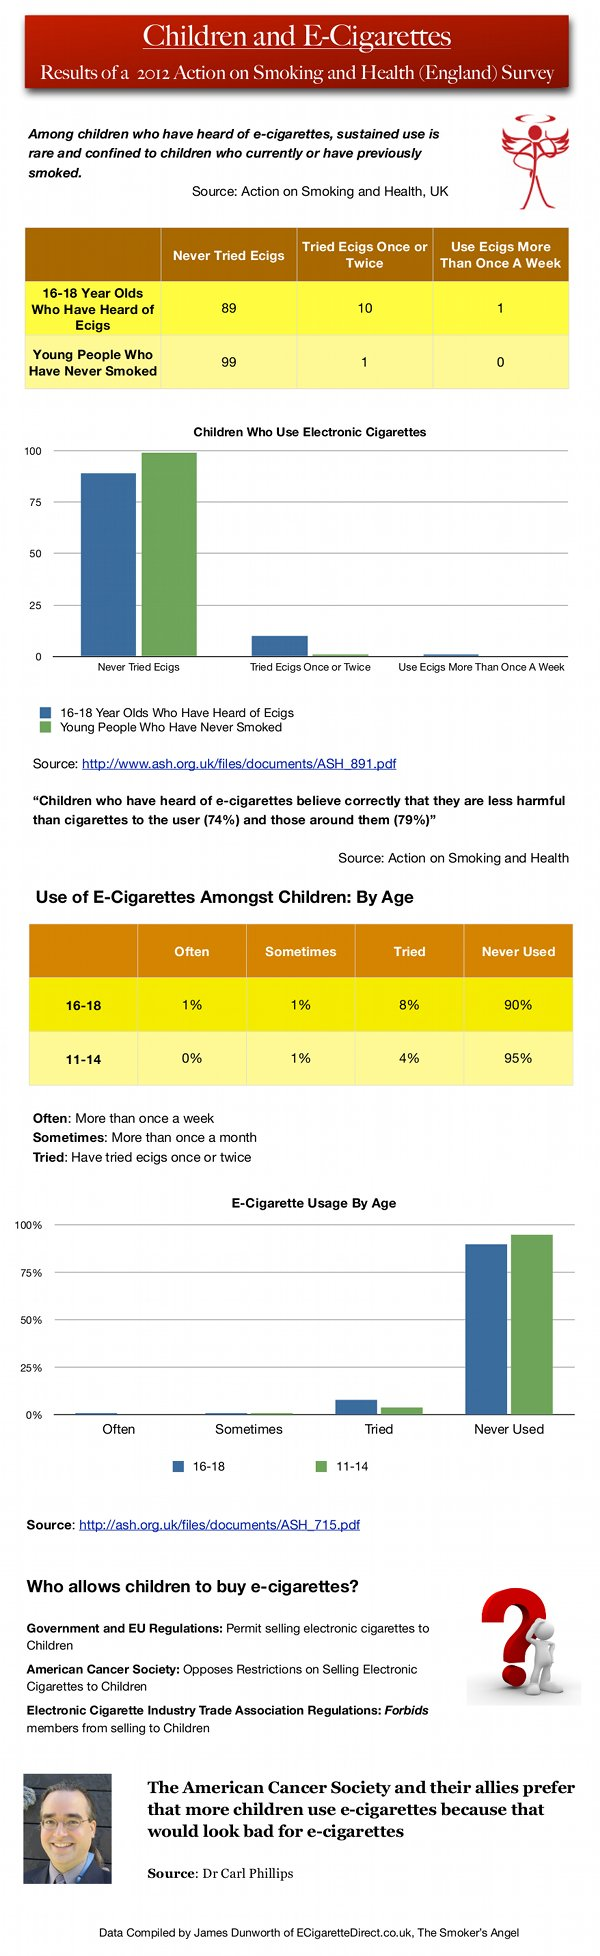 Children and Ecigarettes - The Facts